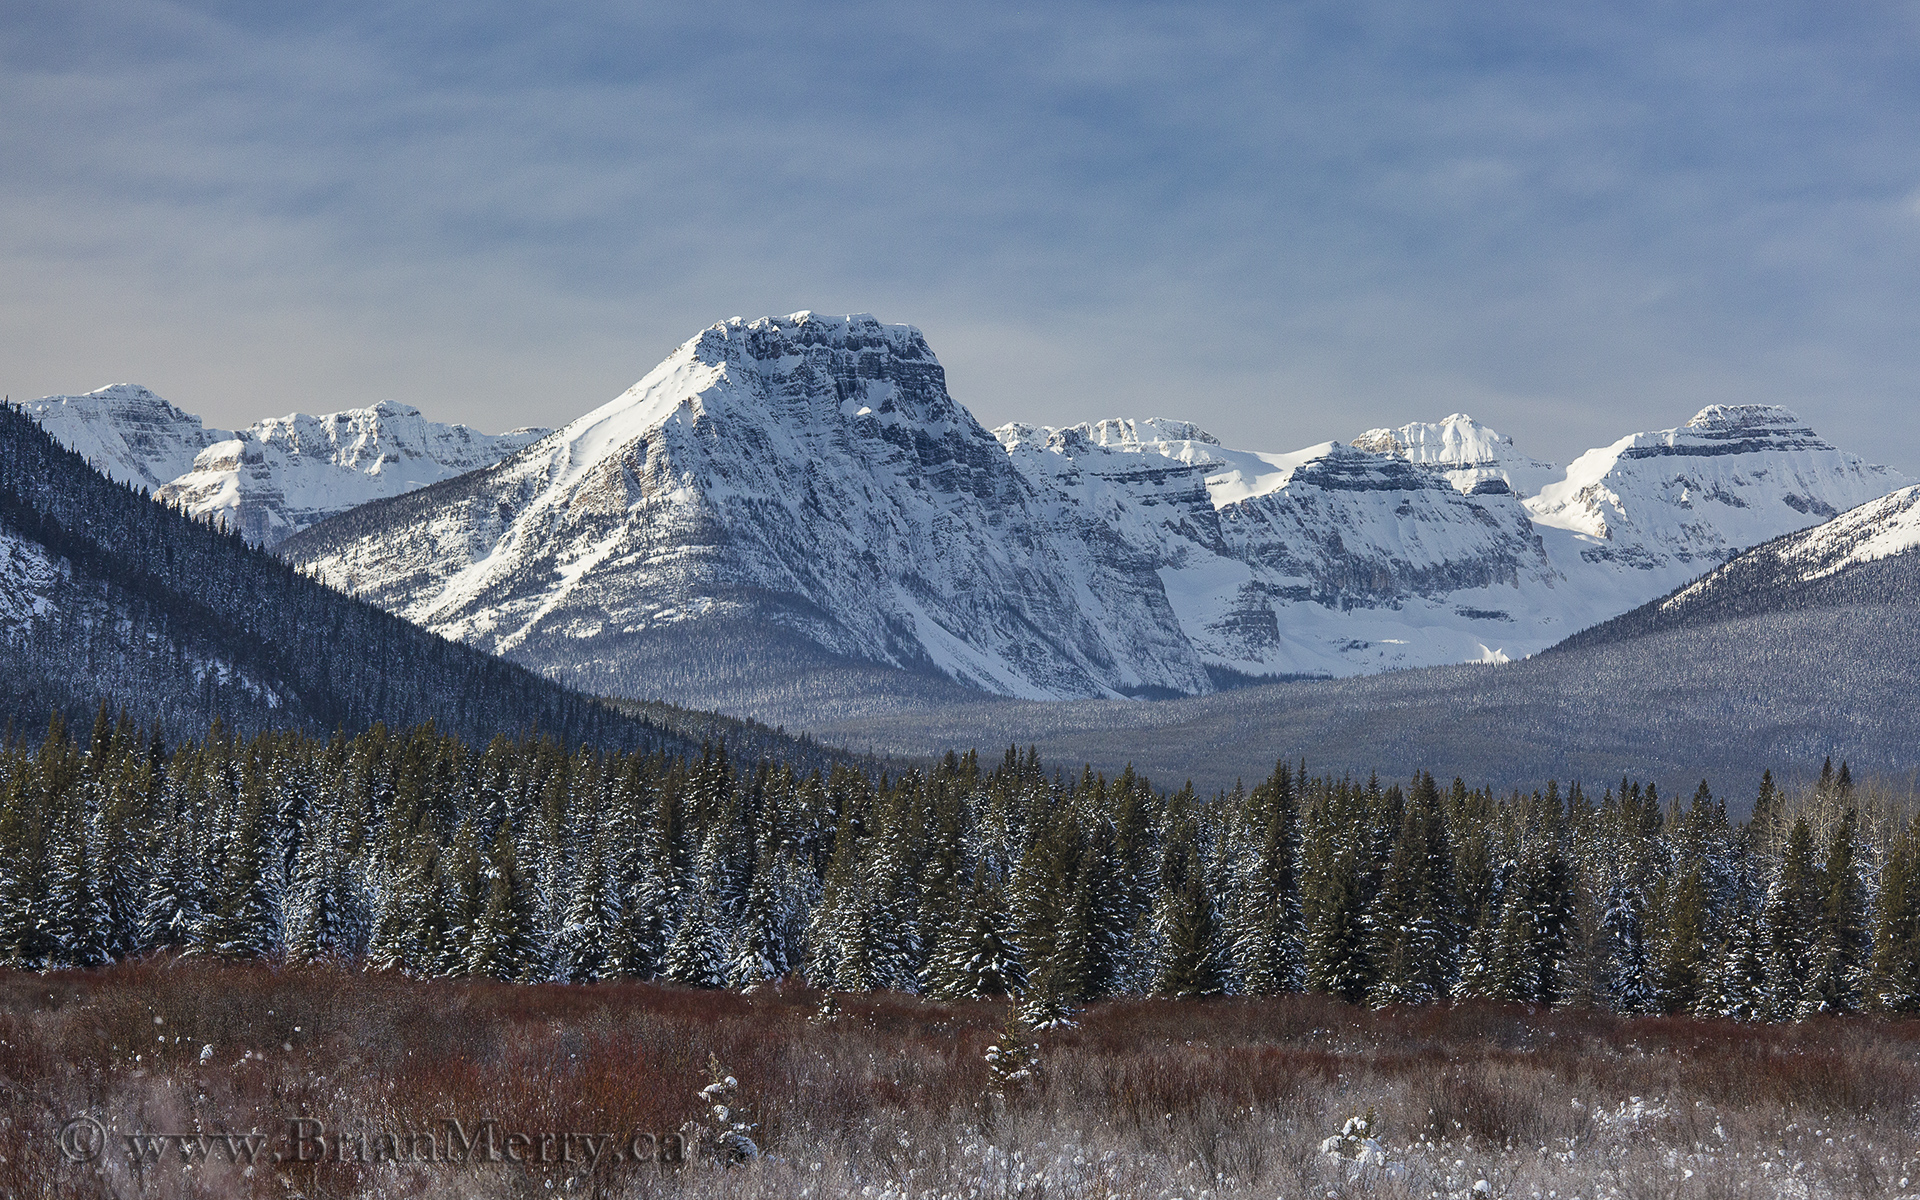 Landscape Photography Moose Meadows on the Banff Bow Valley Parkway – Location Profile